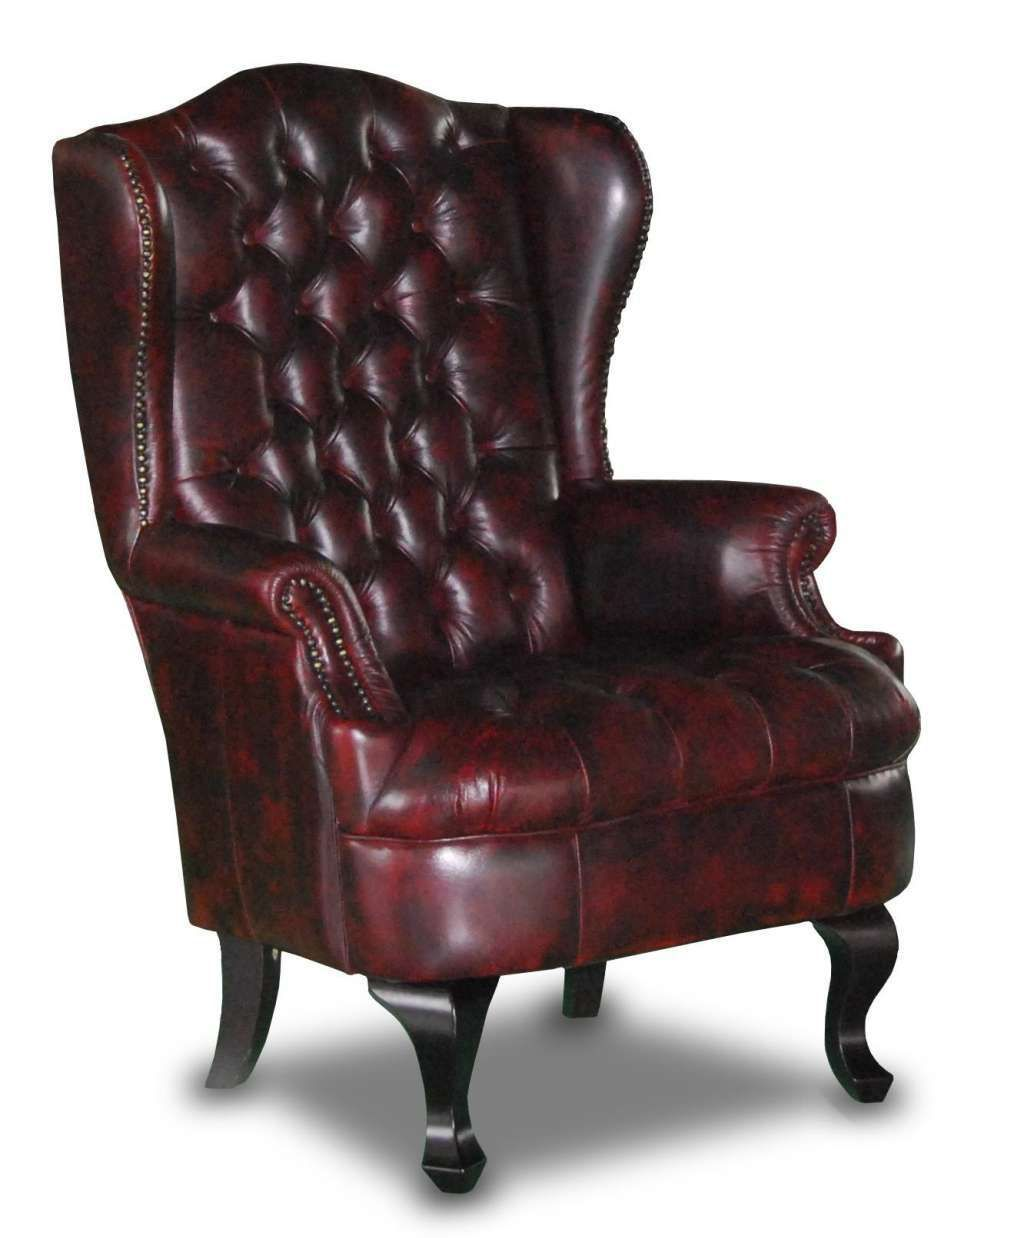 Beautiful Chesterfield Chair